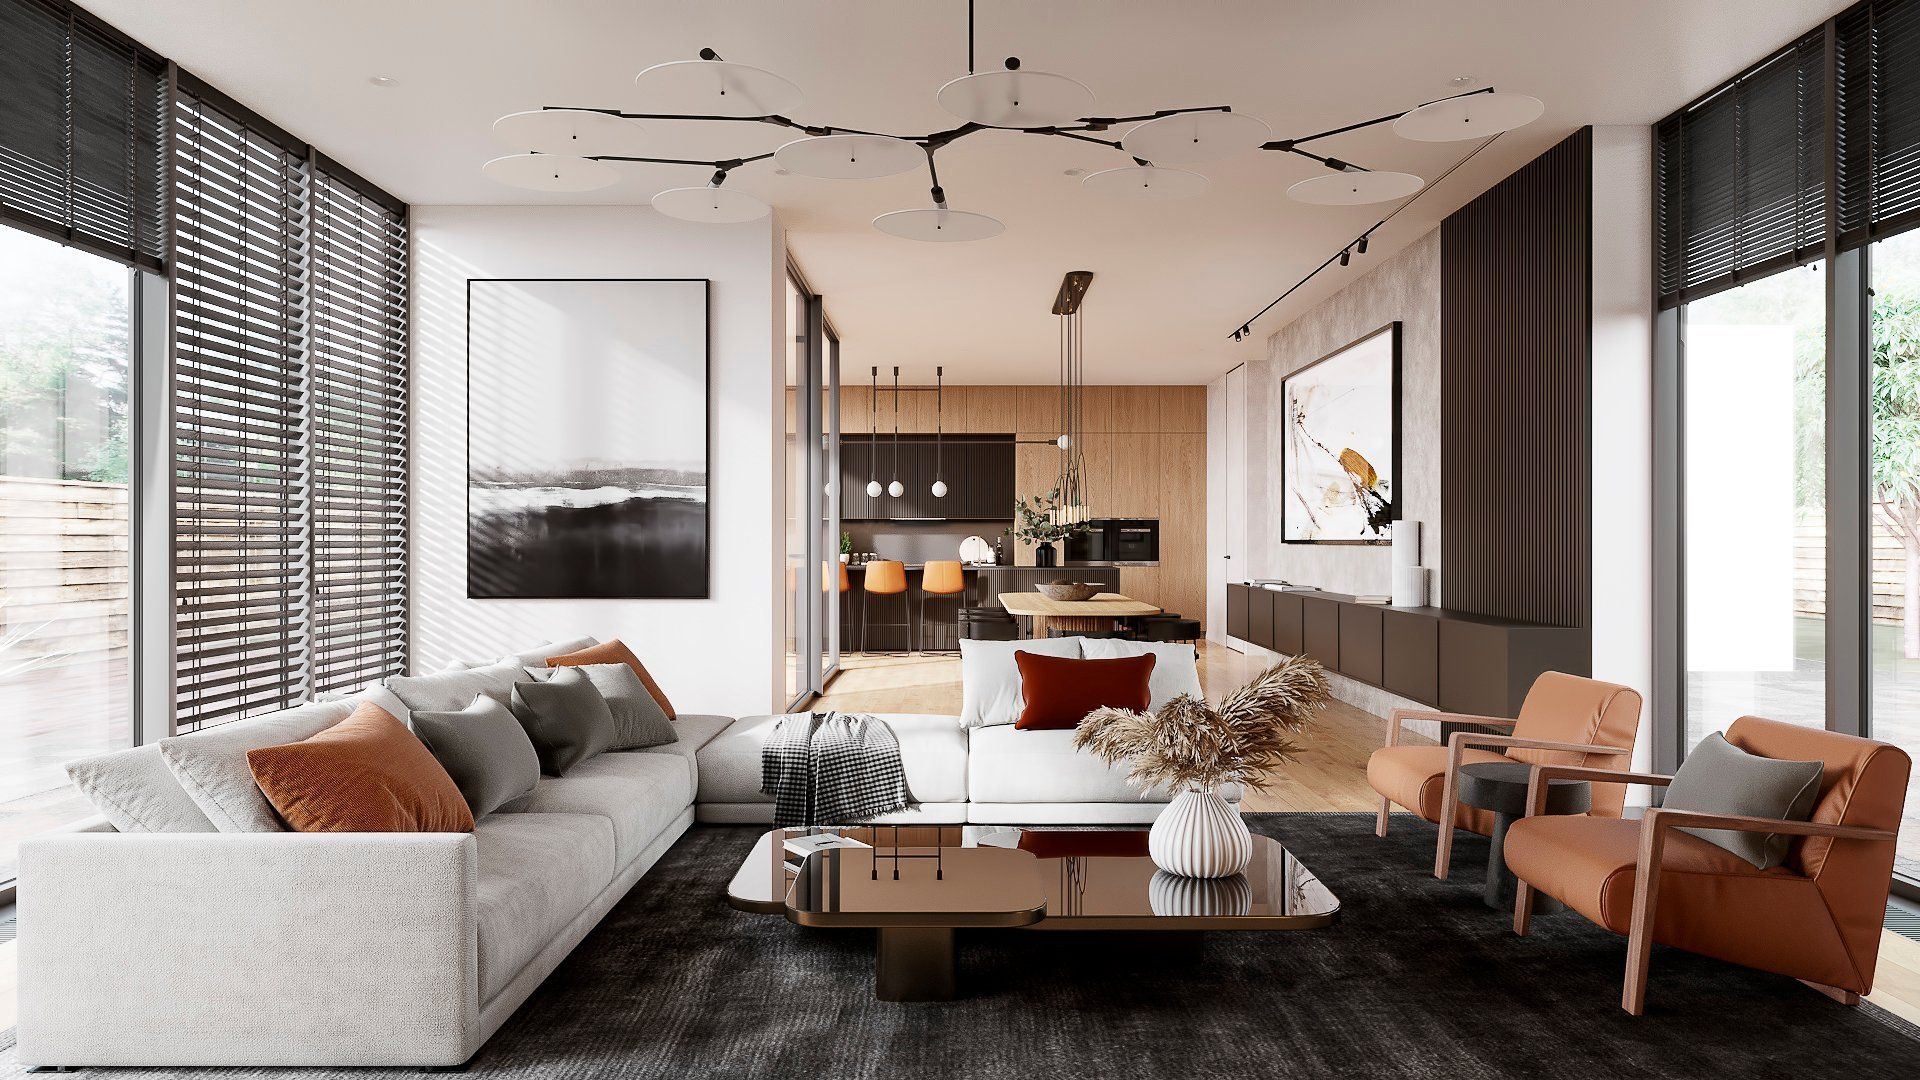 3D Render of a Chic Mid-Century Modern Living Room